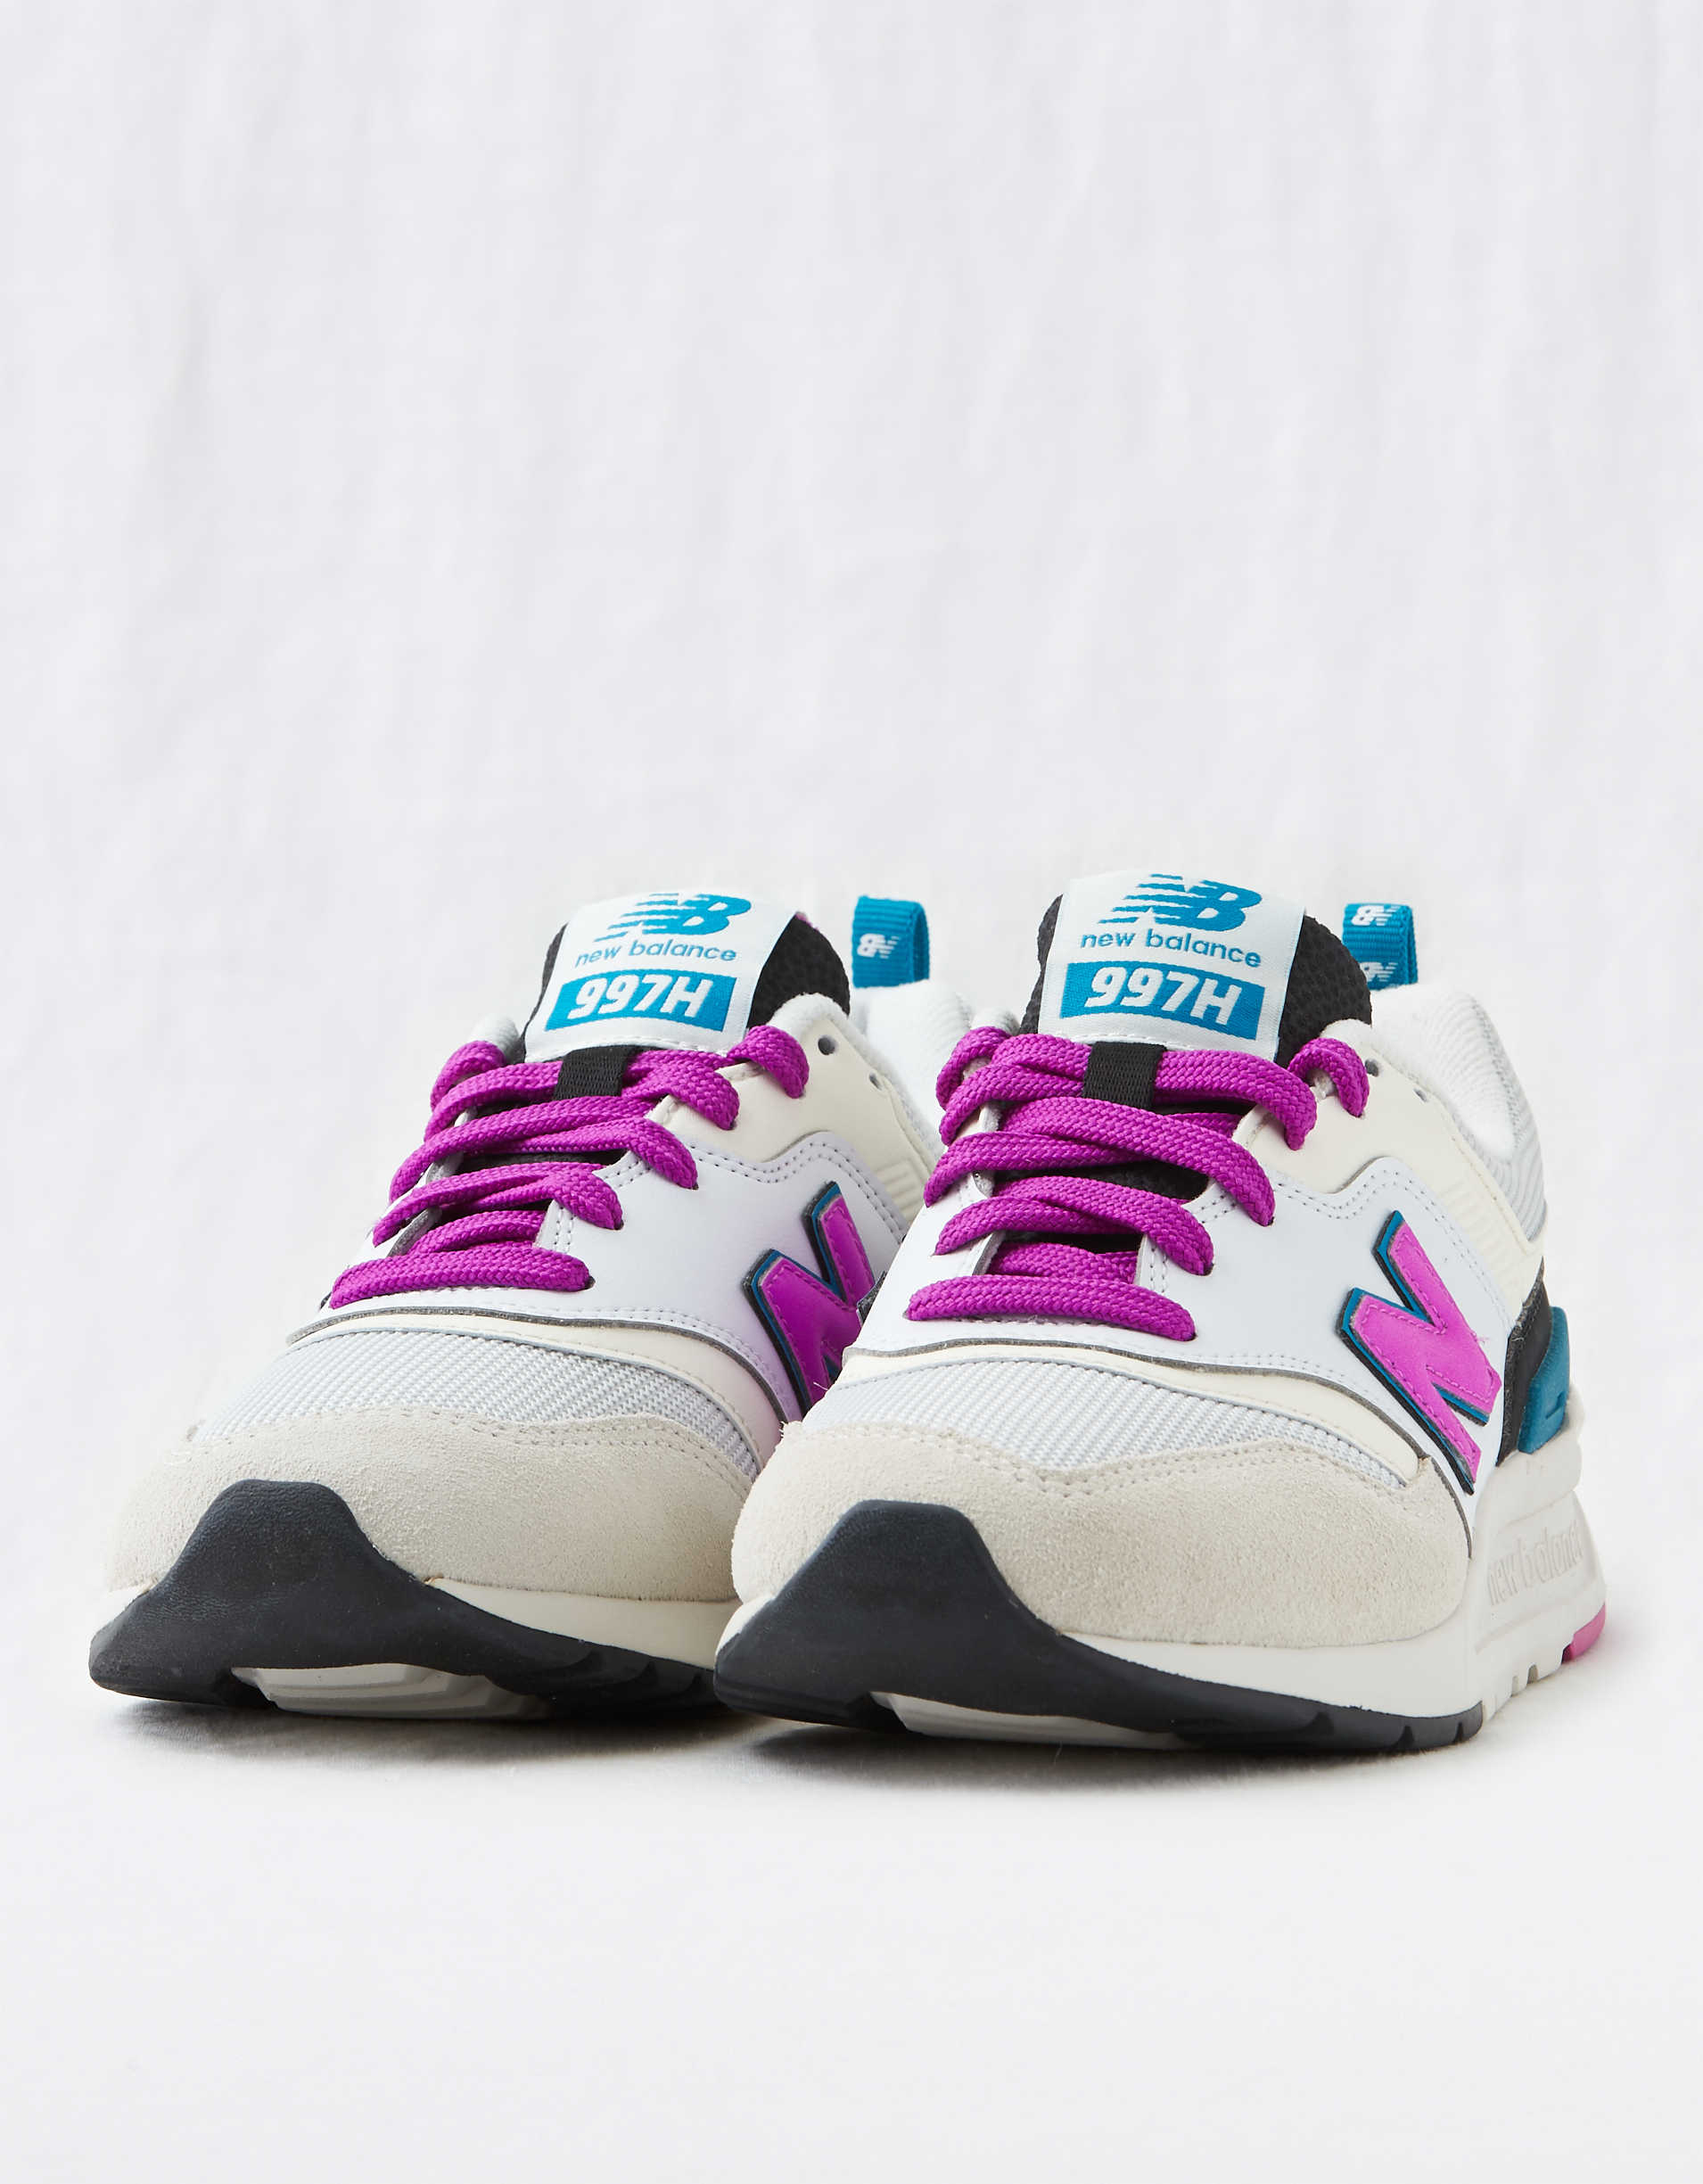 New Balance Women's 997H Sneaker